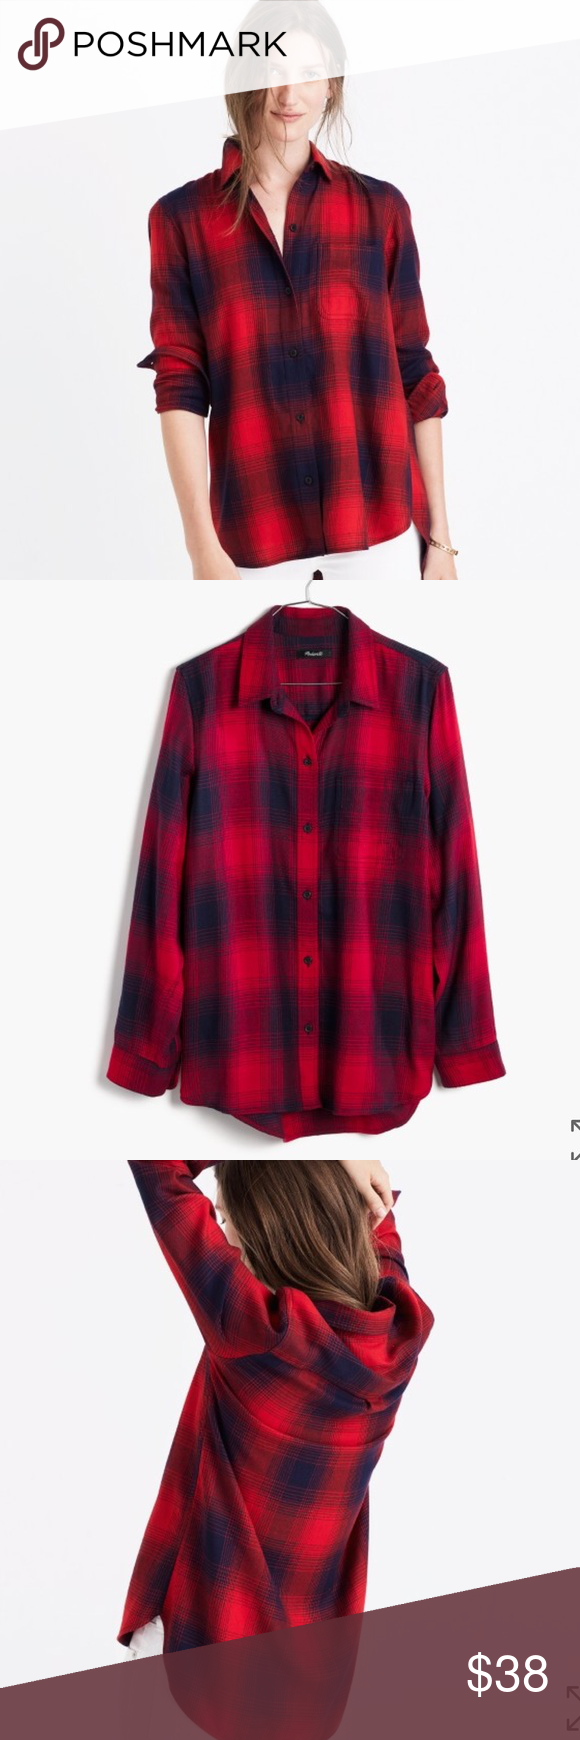 NWT Madewell flannel Brand new with tags size large madewell flannel. Super comfy and soft. Normally $79 Madewell Tops Button Down Shirts